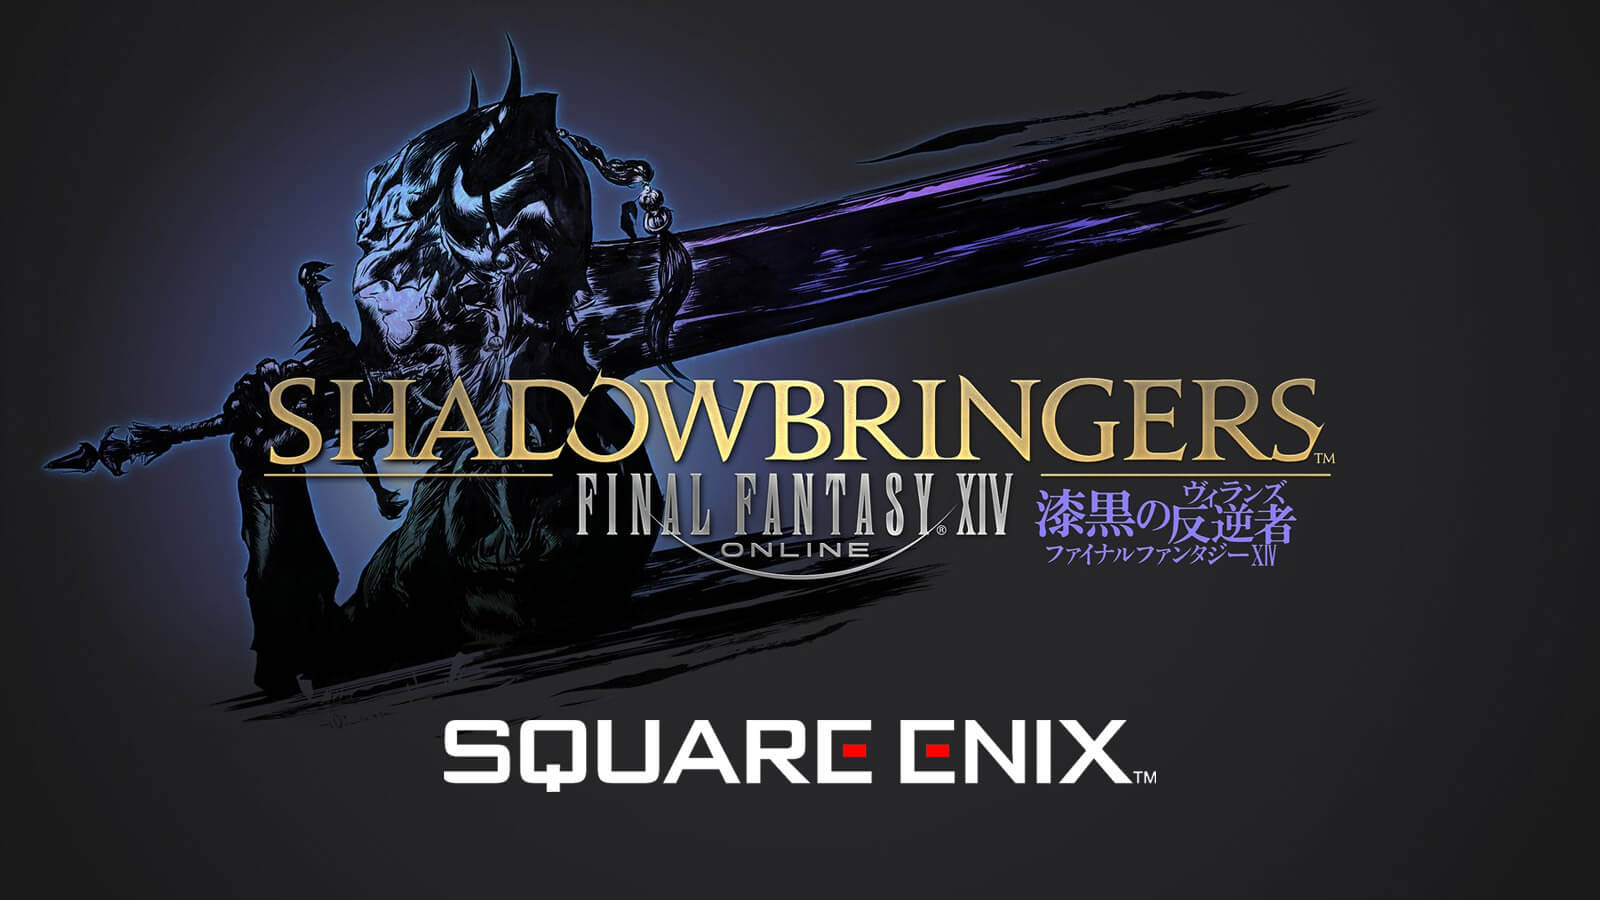 Final Fantasy XIV: Shadowbringers Expansion Announced - Gameslaught